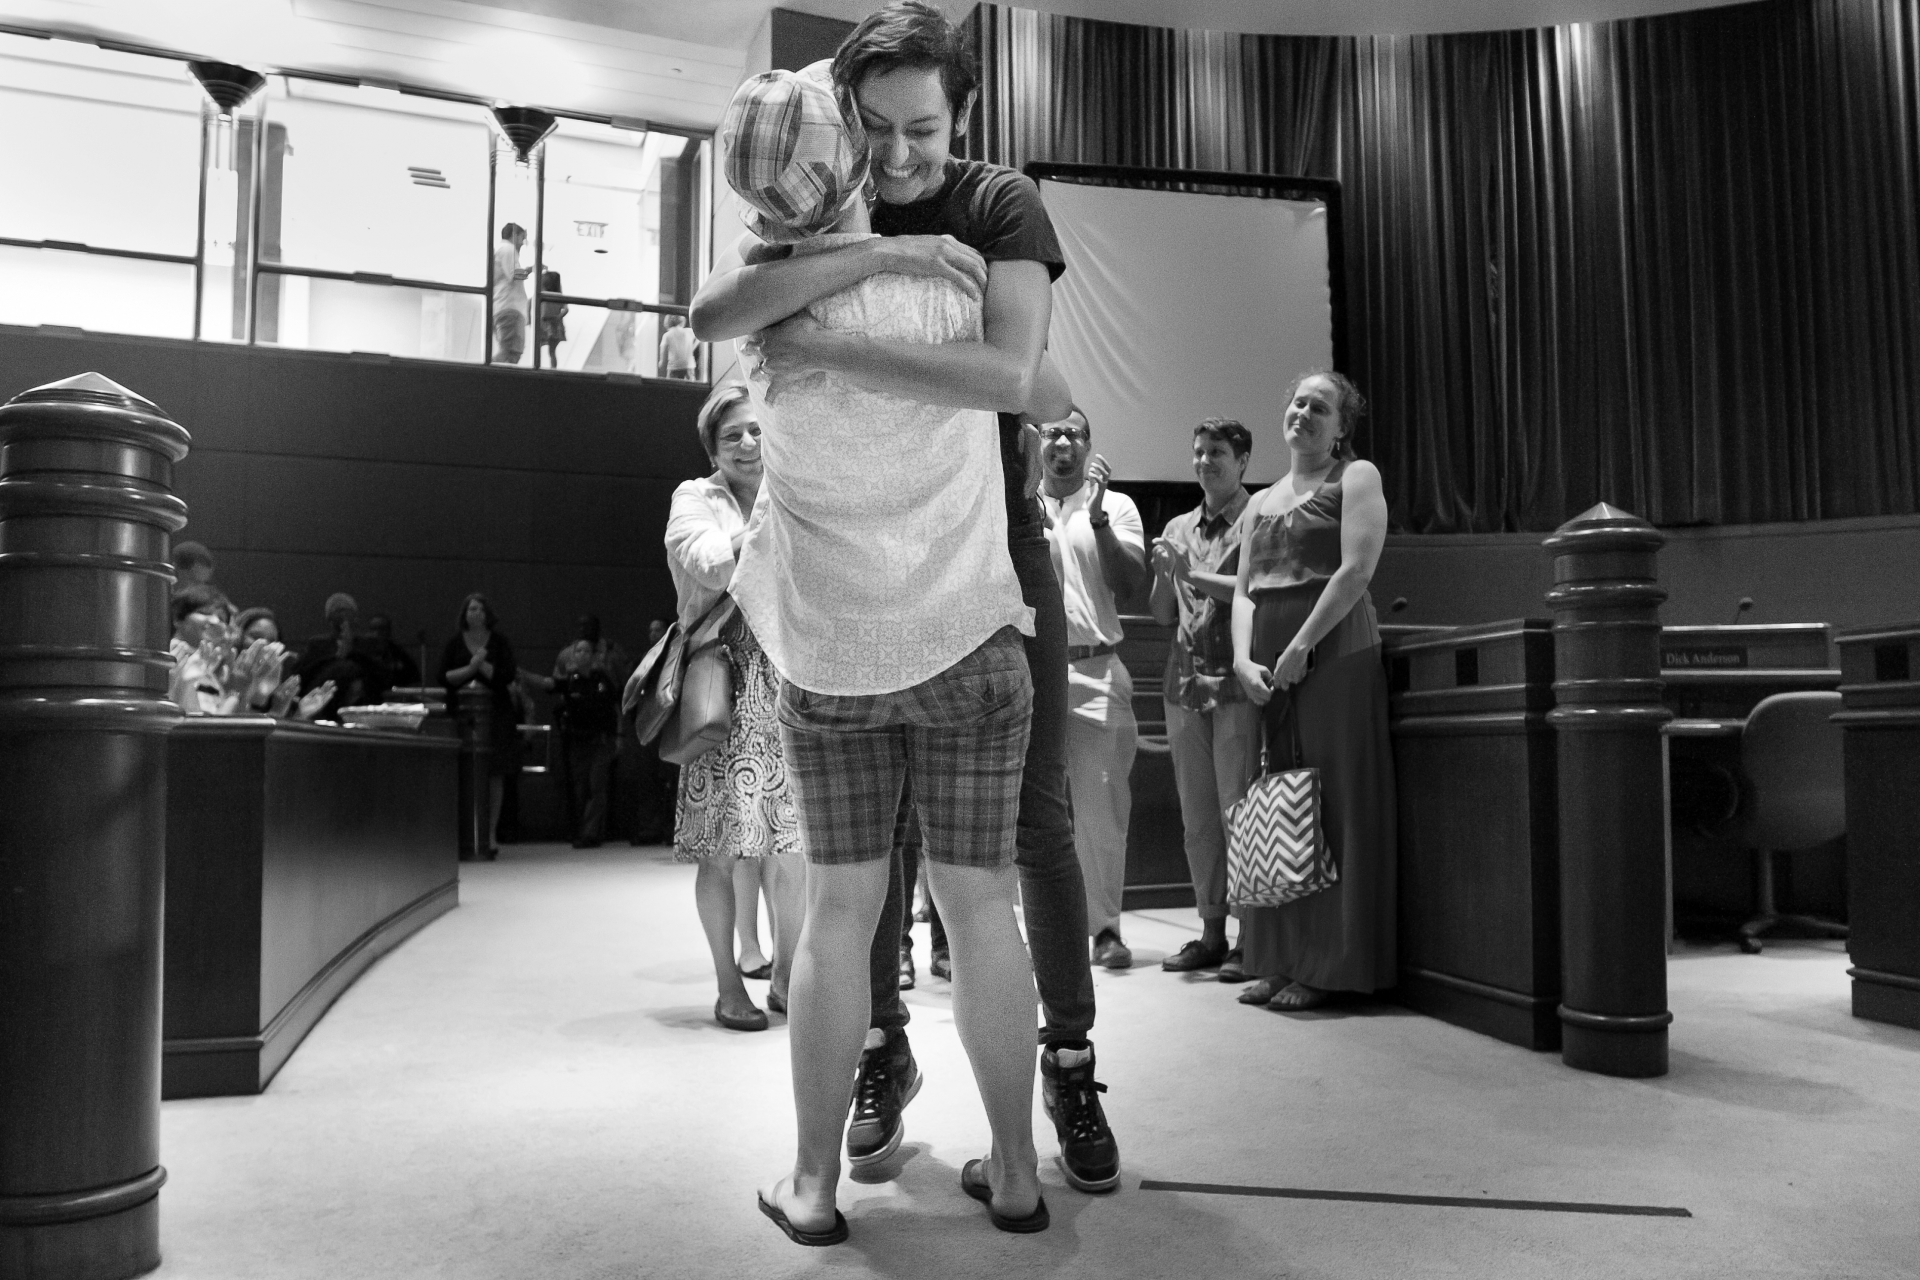 Georgia Elopements in ATL | The couple go in for the hug